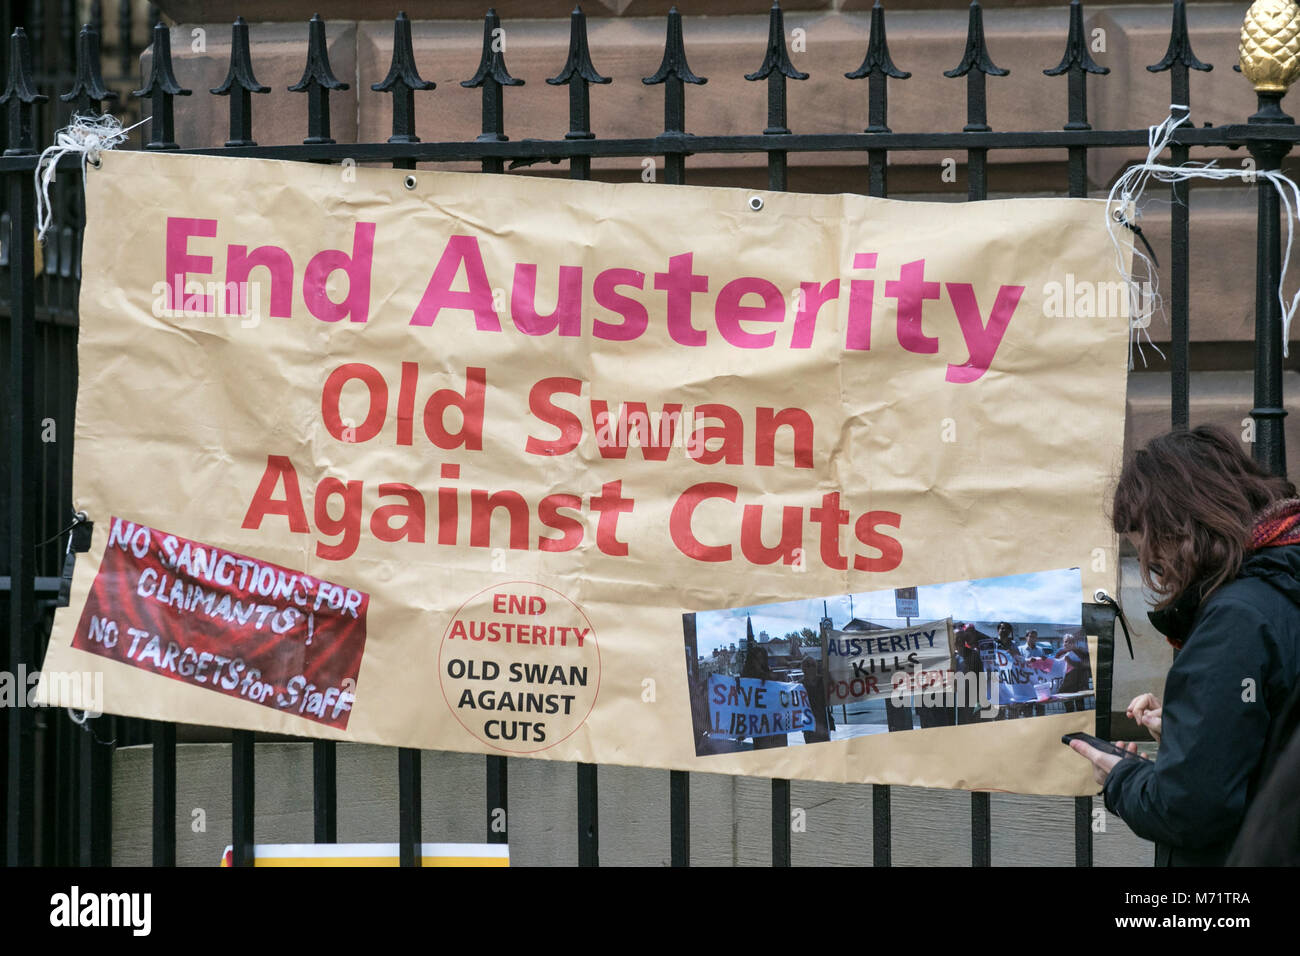 Anti austerity campaign banner banners placard placards union pension cuts demo demonstration liverpool city centre Stock Photo